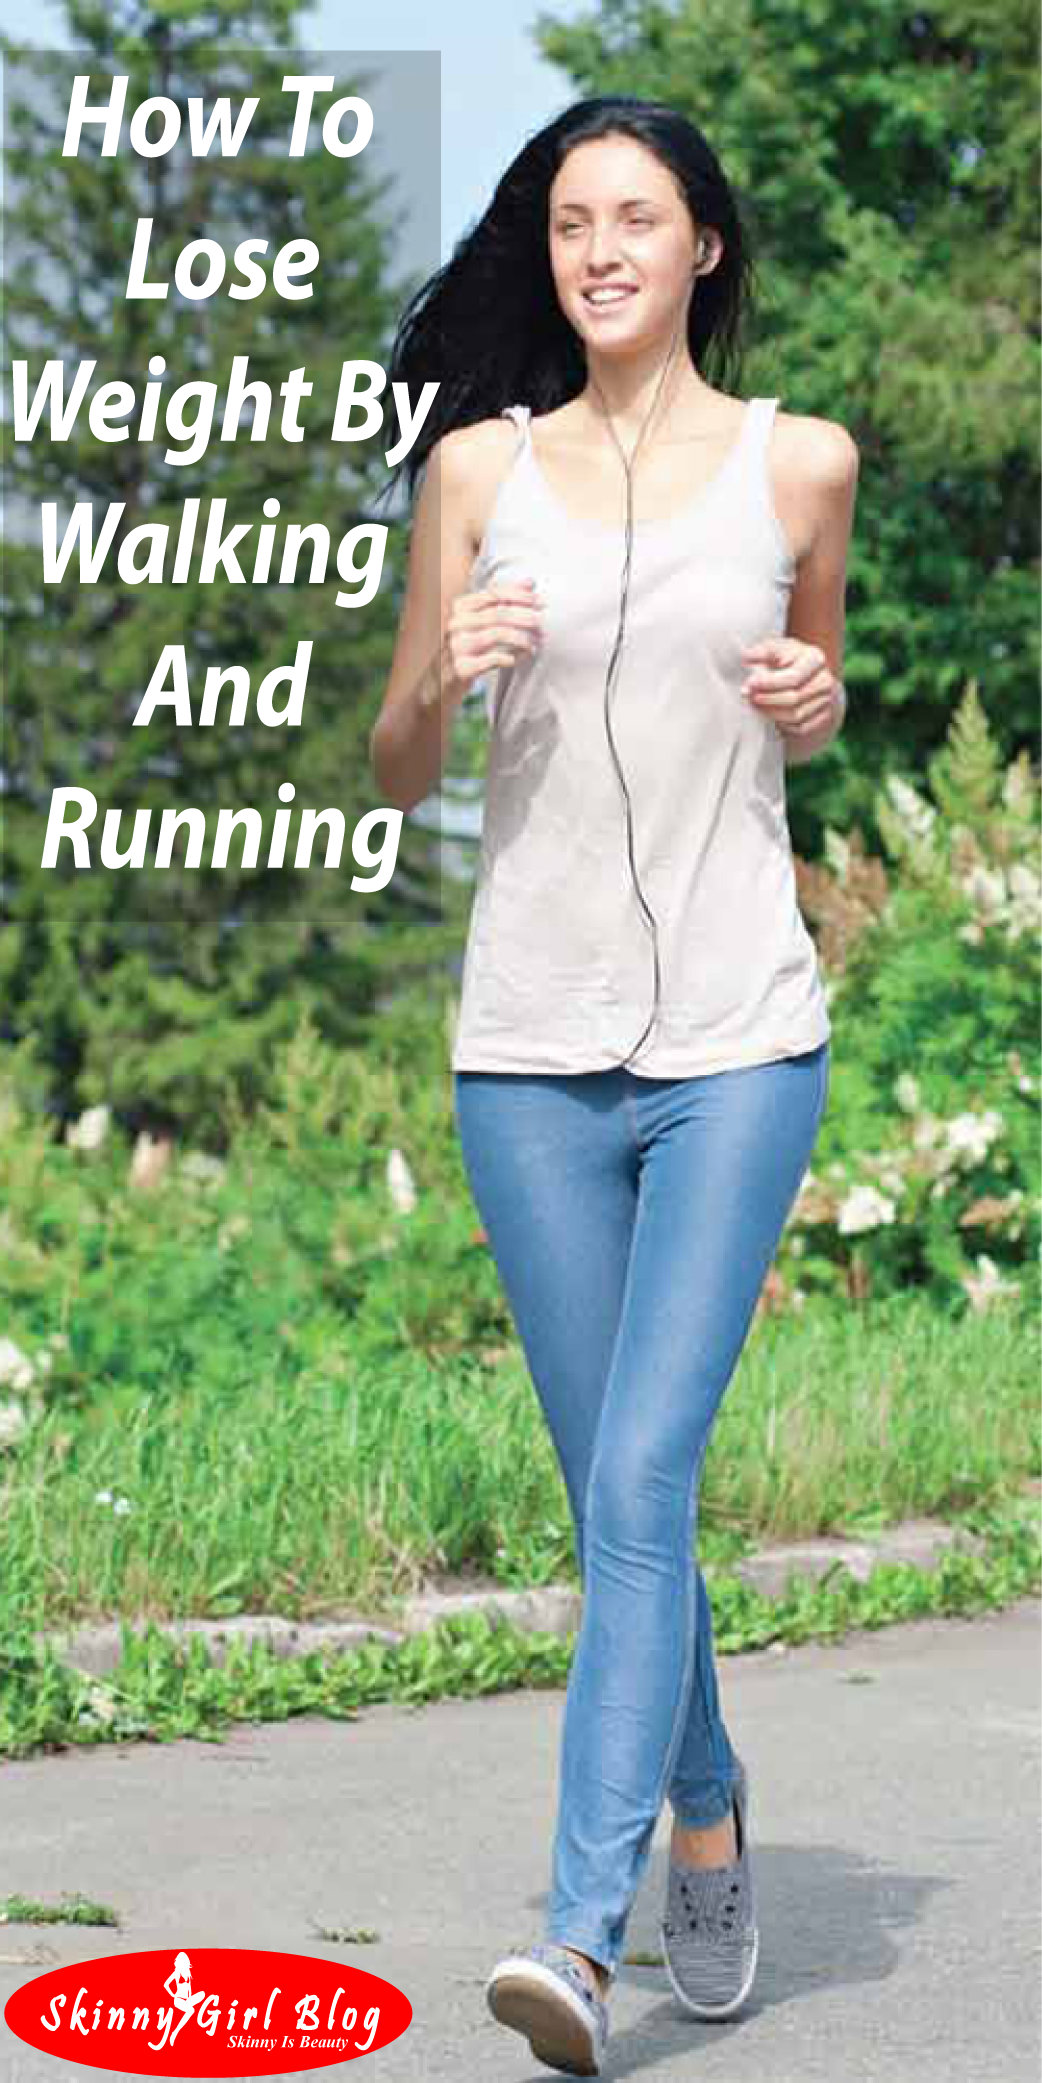 Walking Is A Great Cardio Exercise To Lose Weight Fast 30 Min Walking Can  Burn